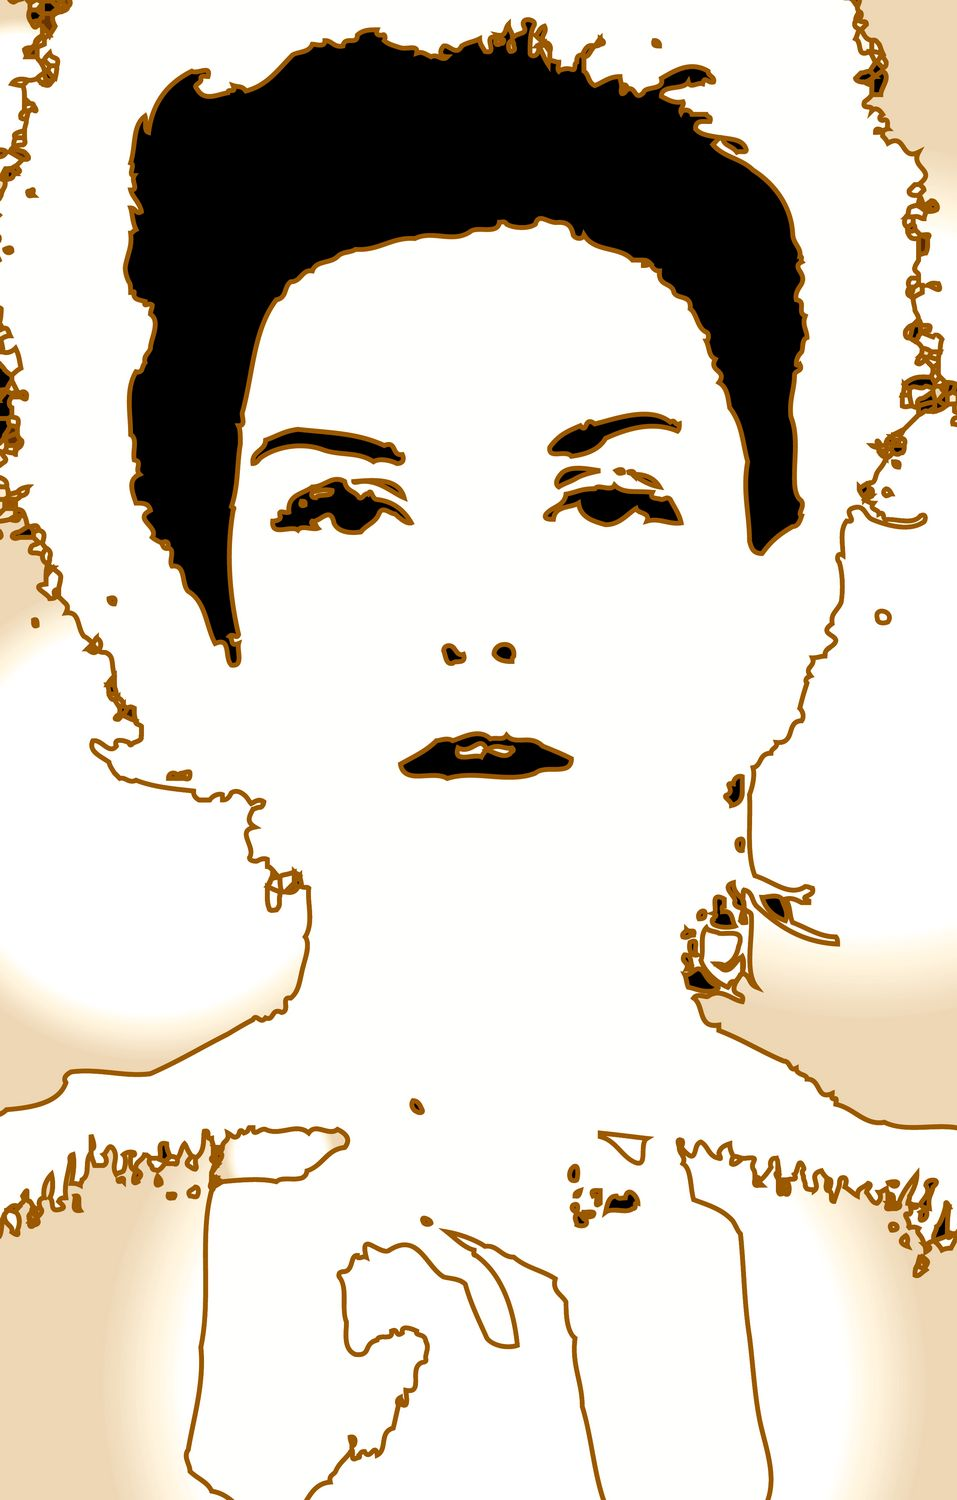 - The same as above, but with a slight sepia tone. - A portrait of Donna Mitchell as a young model - 1962 - Tony Karp, design, art, photography, techno-impressionist, techno-impressionism, aerial photography , drone , drones , dji , mavic pro , video , 3D printing - Books -